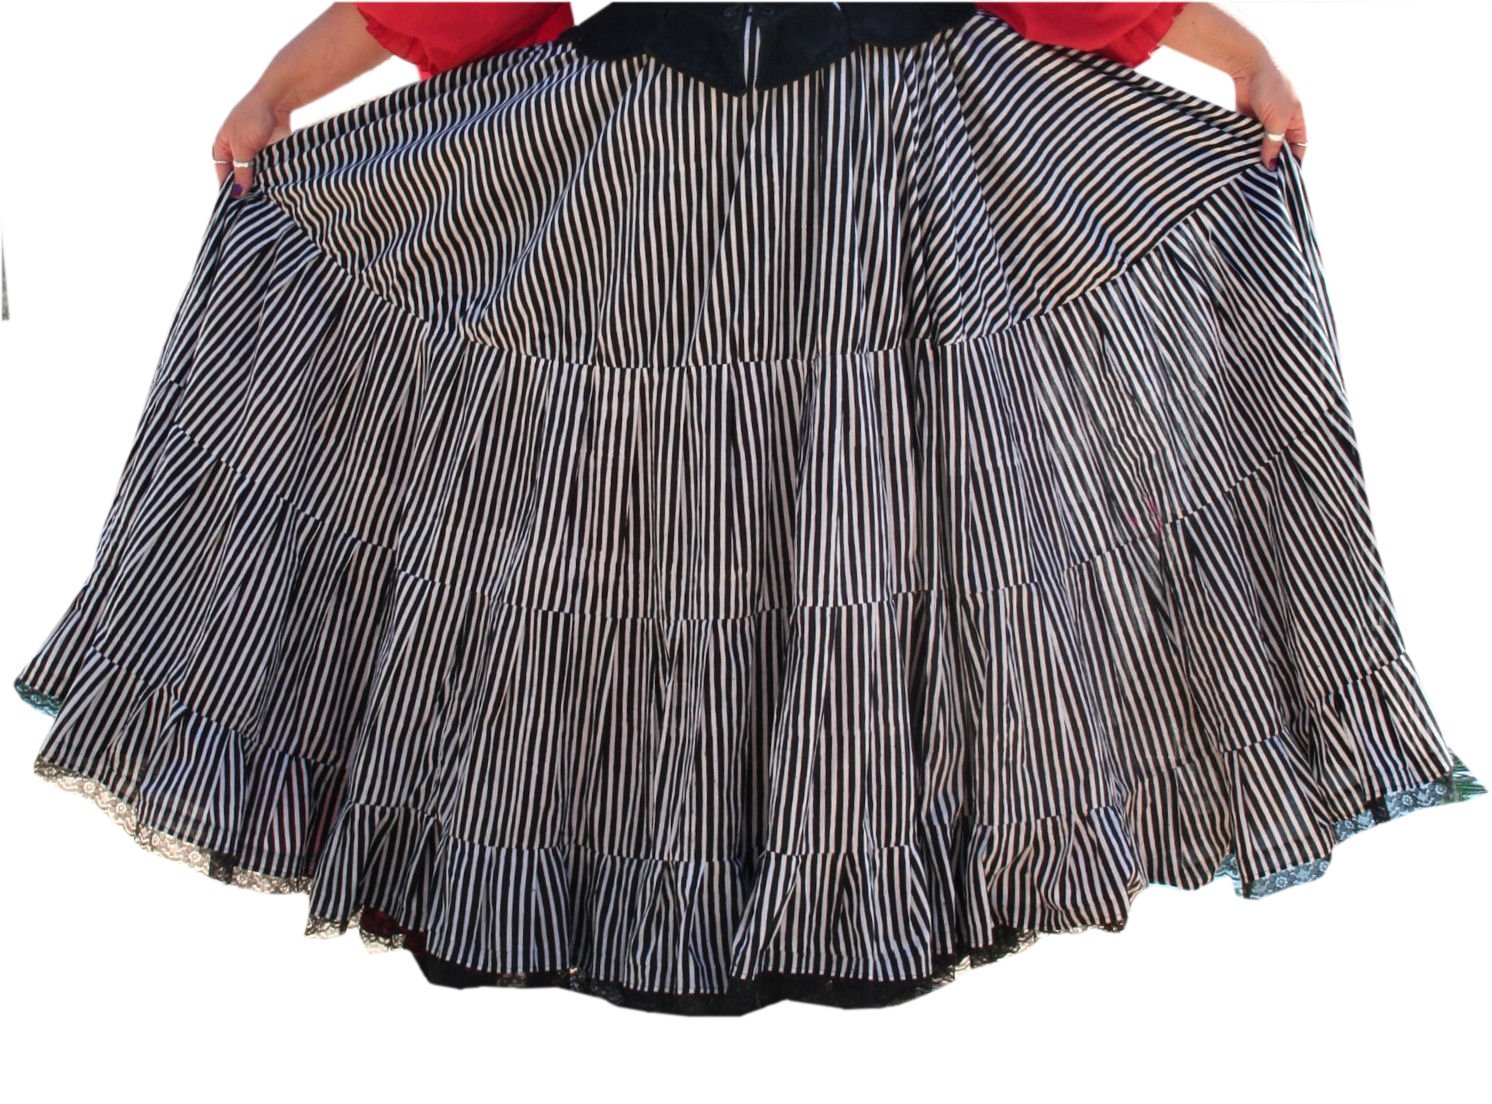 Renaissance Plus Size Skirt by BBW Boutique in Pirate Striped - One Size